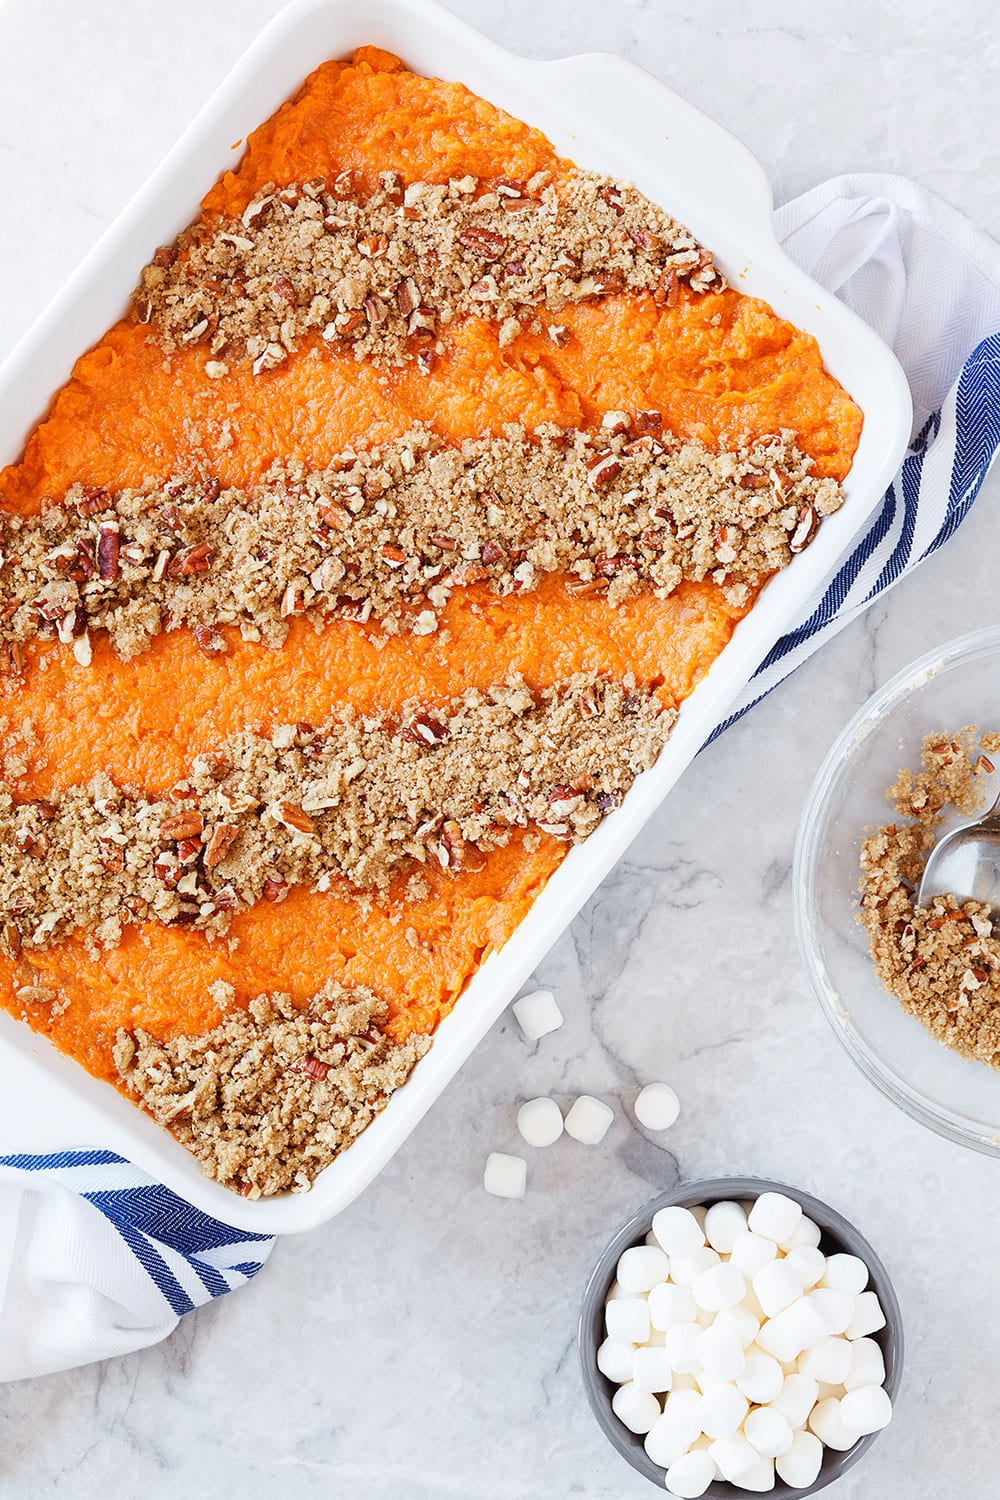 This crowd-pleasing sweet potato casserole has both a pecan topping and a marshmallow topping for the best of both worlds!